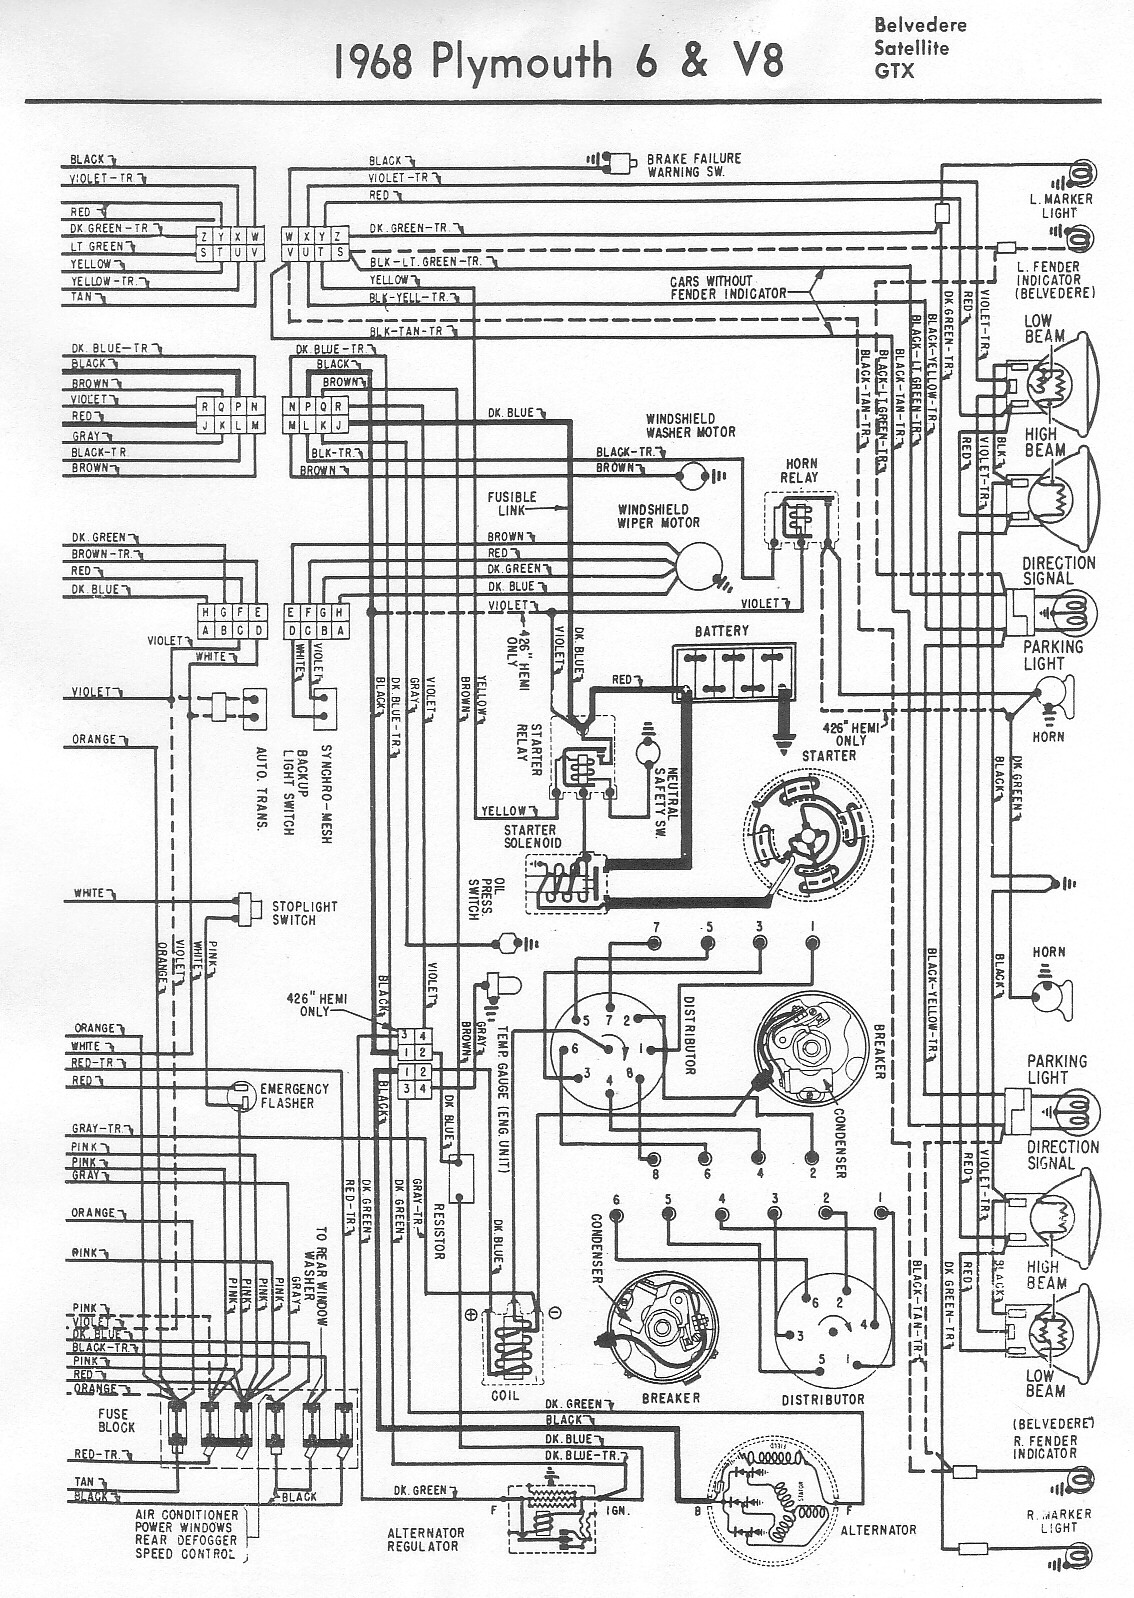 1969 Plymouth Turn Signal Wiring Diagram Guide And Troubleshooting Gtx Roadrunner Tach Third Level Rh 3 11 Jacobwinterstein Com